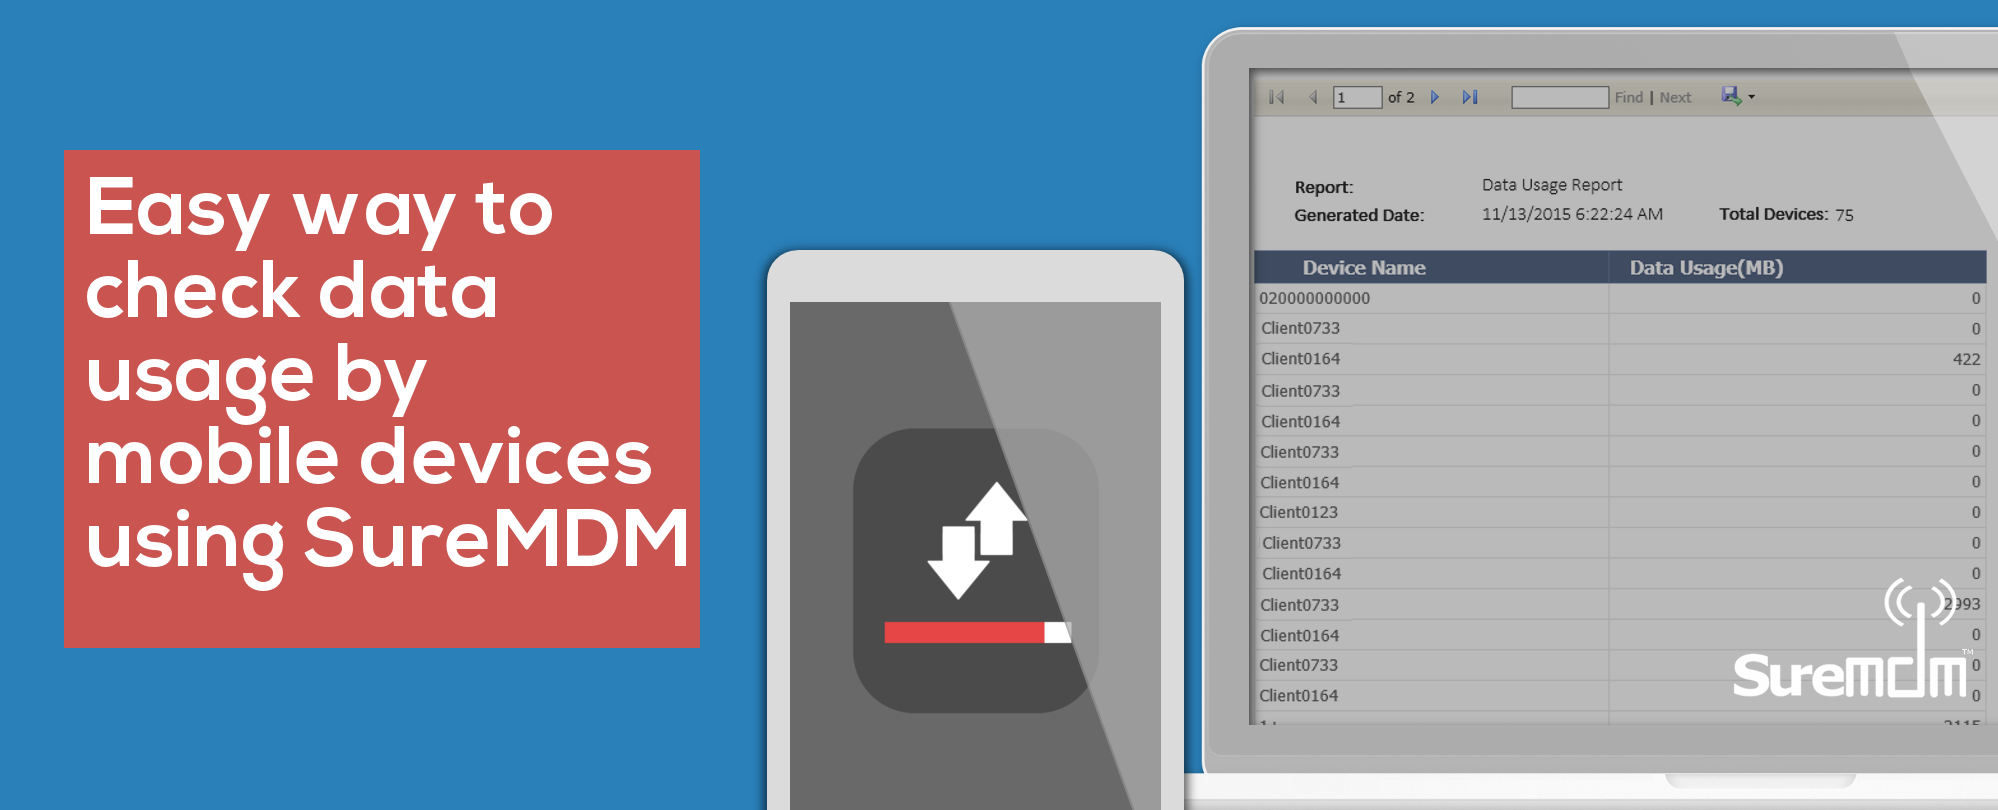 Data Usage Mobile Devices - SureMDM